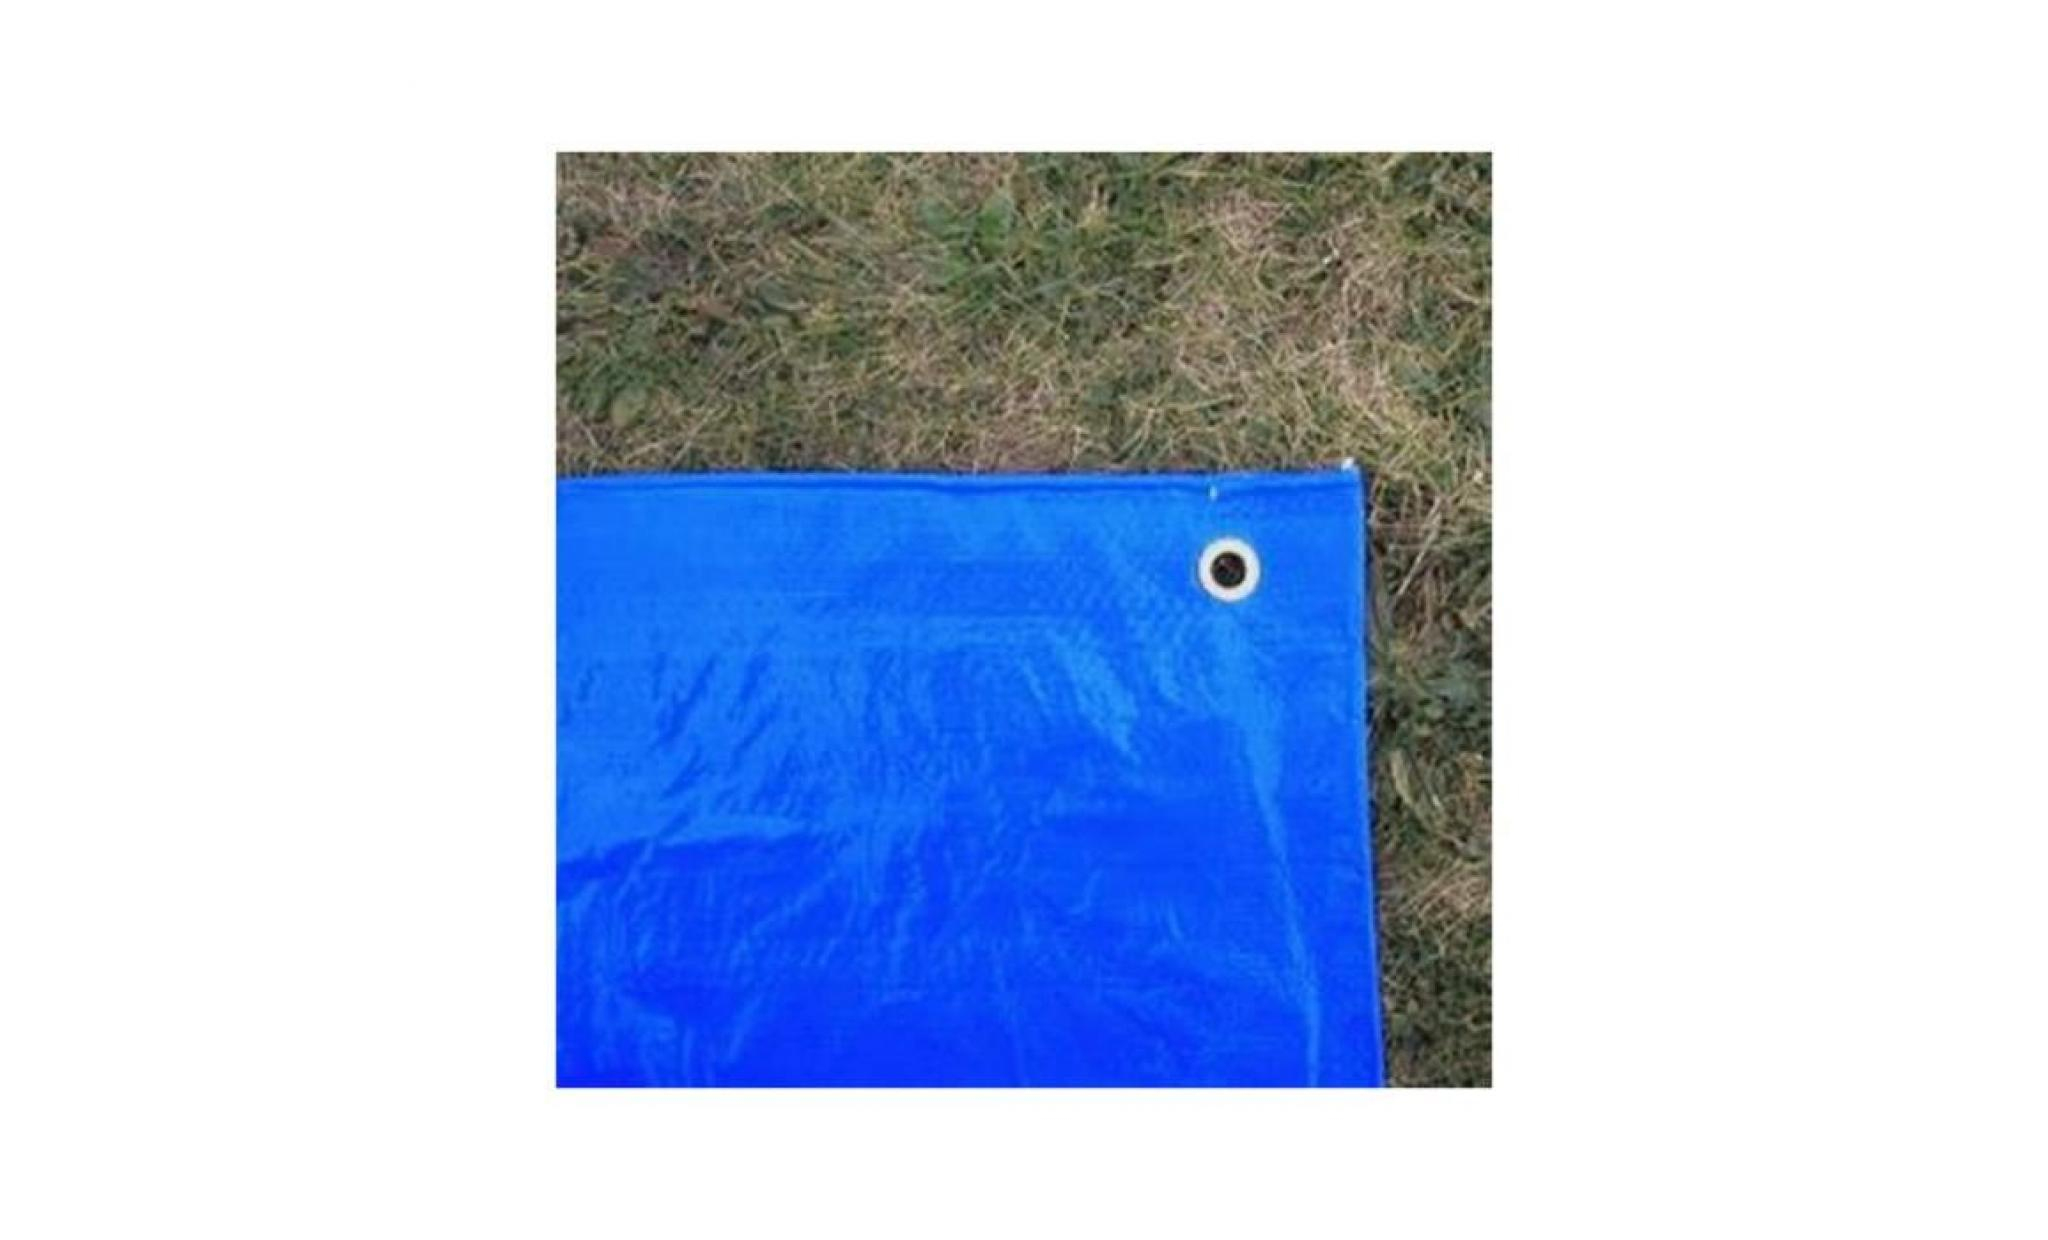 Baches Direct - Bâche Piscine 150 G/m² - 4 X 5 M - Couverture Piscine -  Bache Imperméable - Baches Piscine Bicolore : Verte Et Bleue serapportantà Bache Piscine Pas Cher